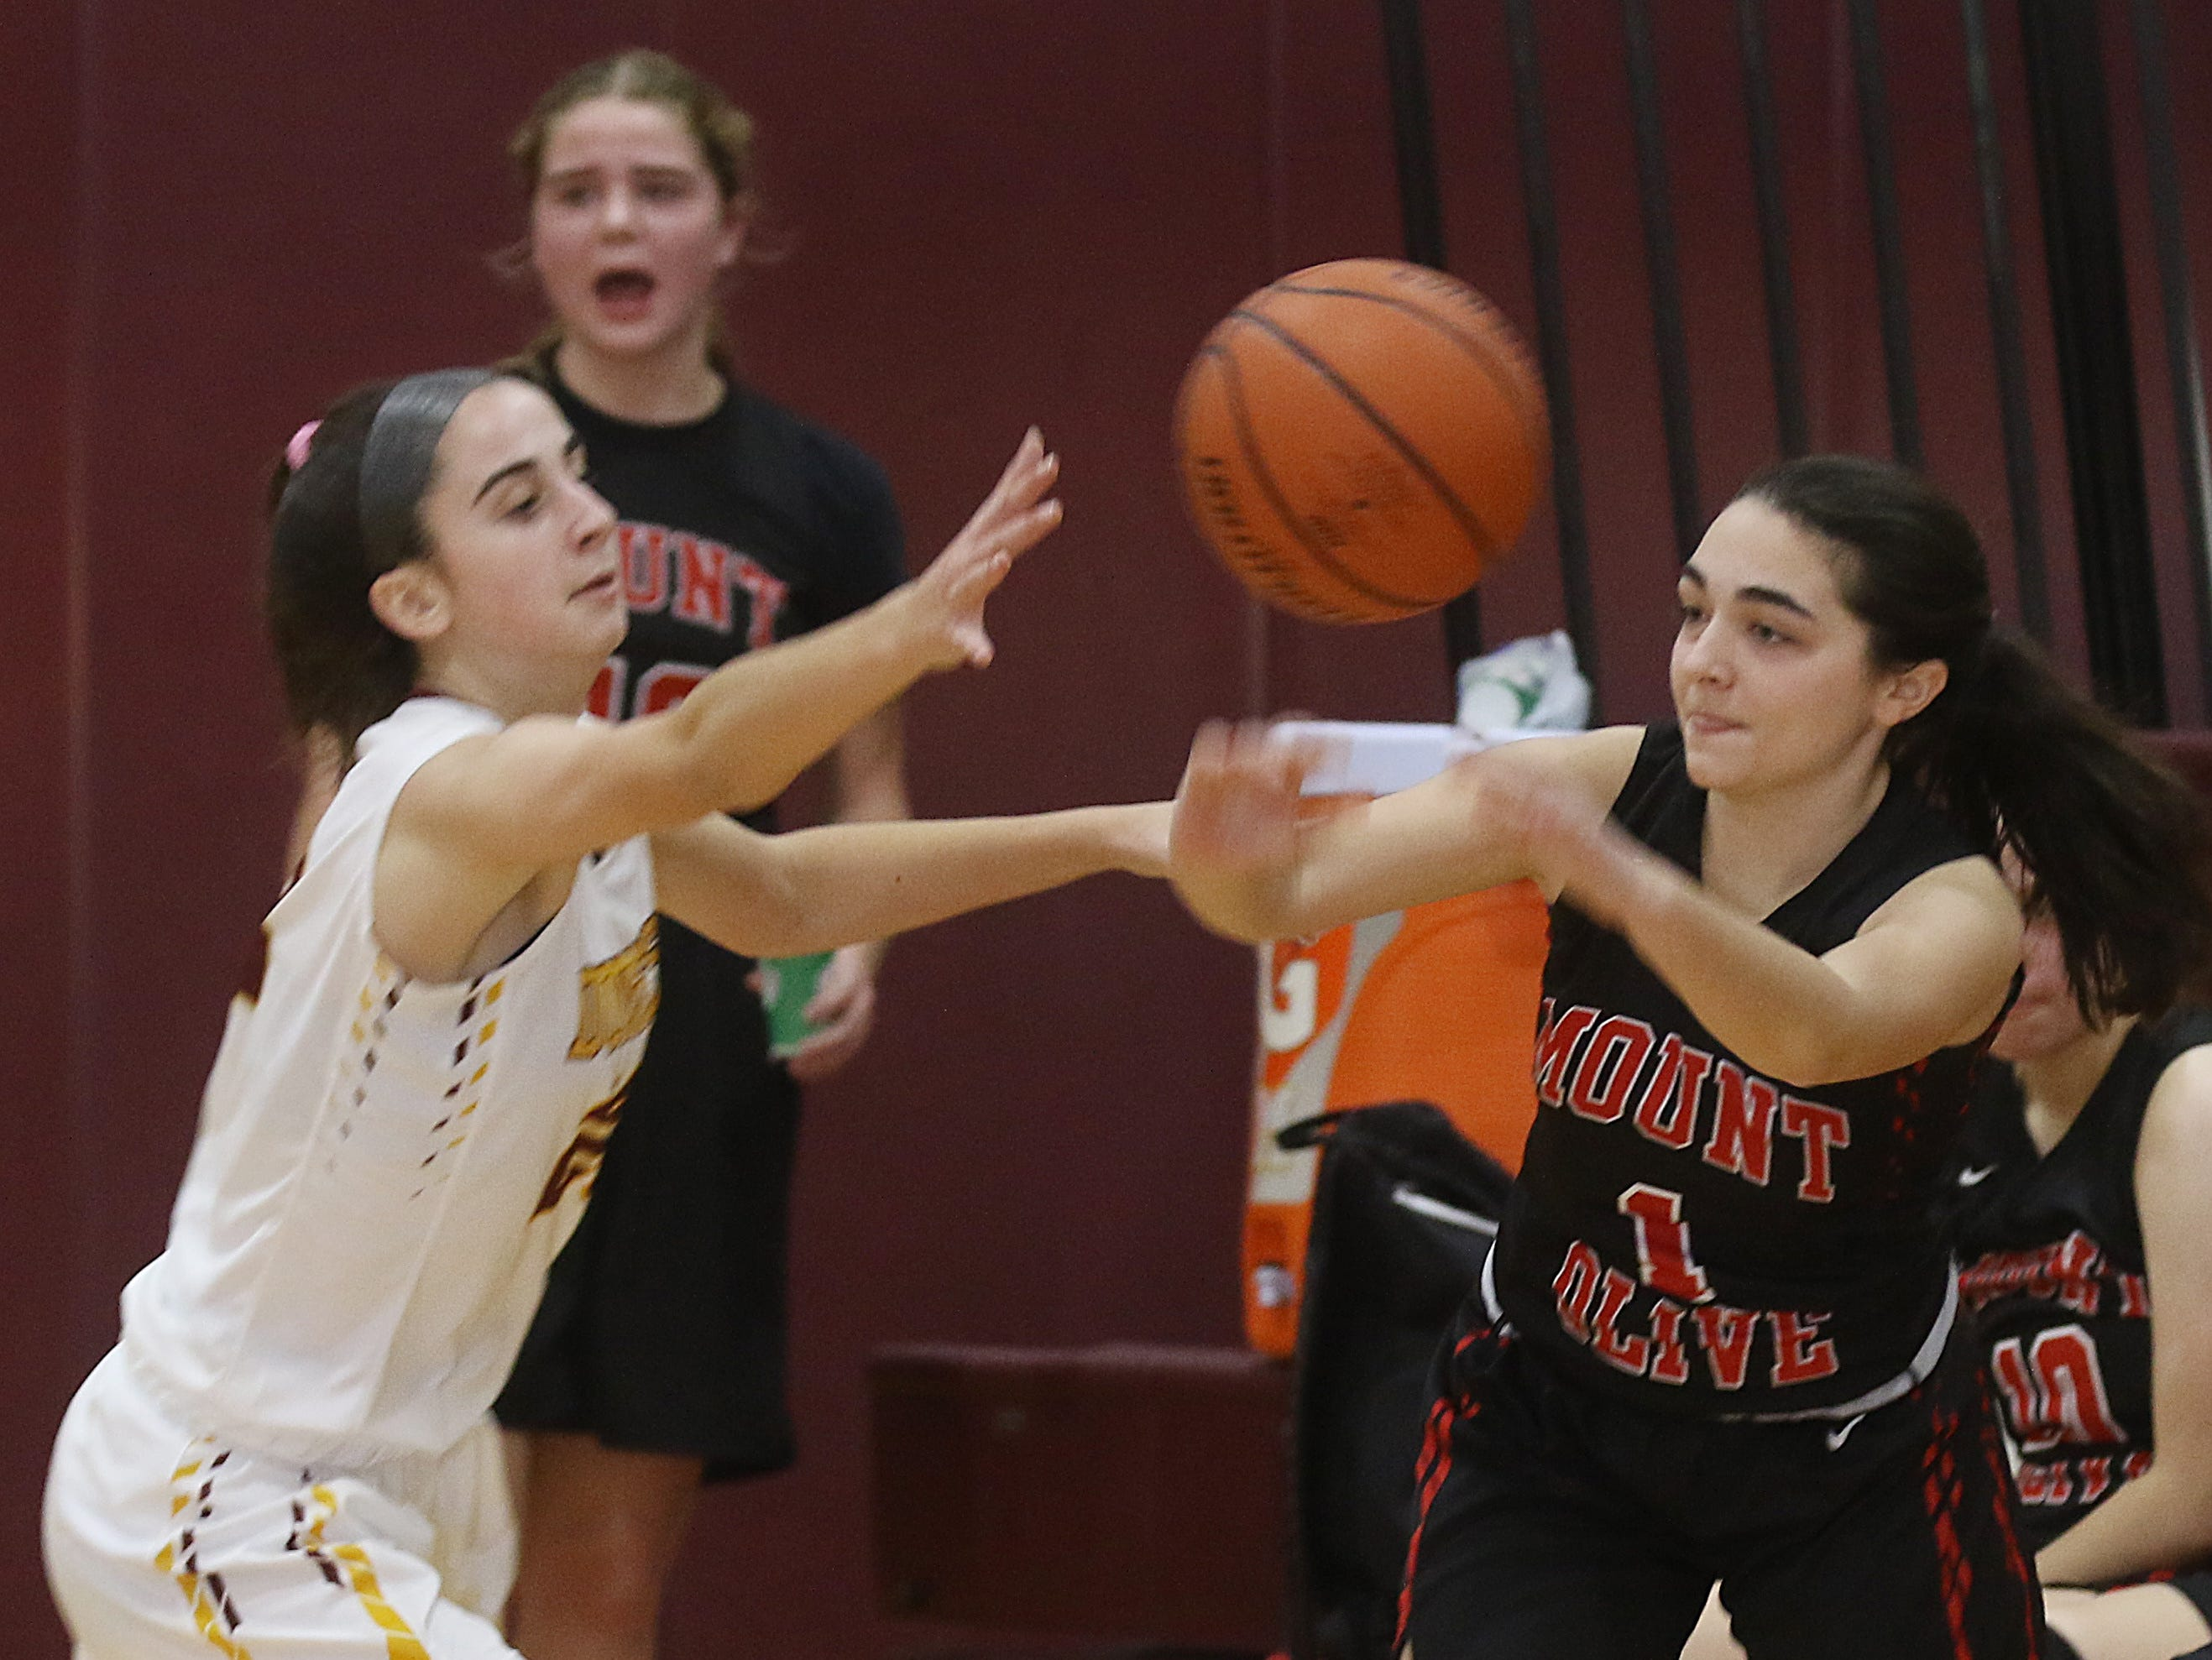 Maggie Perrello of Madison goes for the ball with Jessica Gault of Mount Olive late in the game.